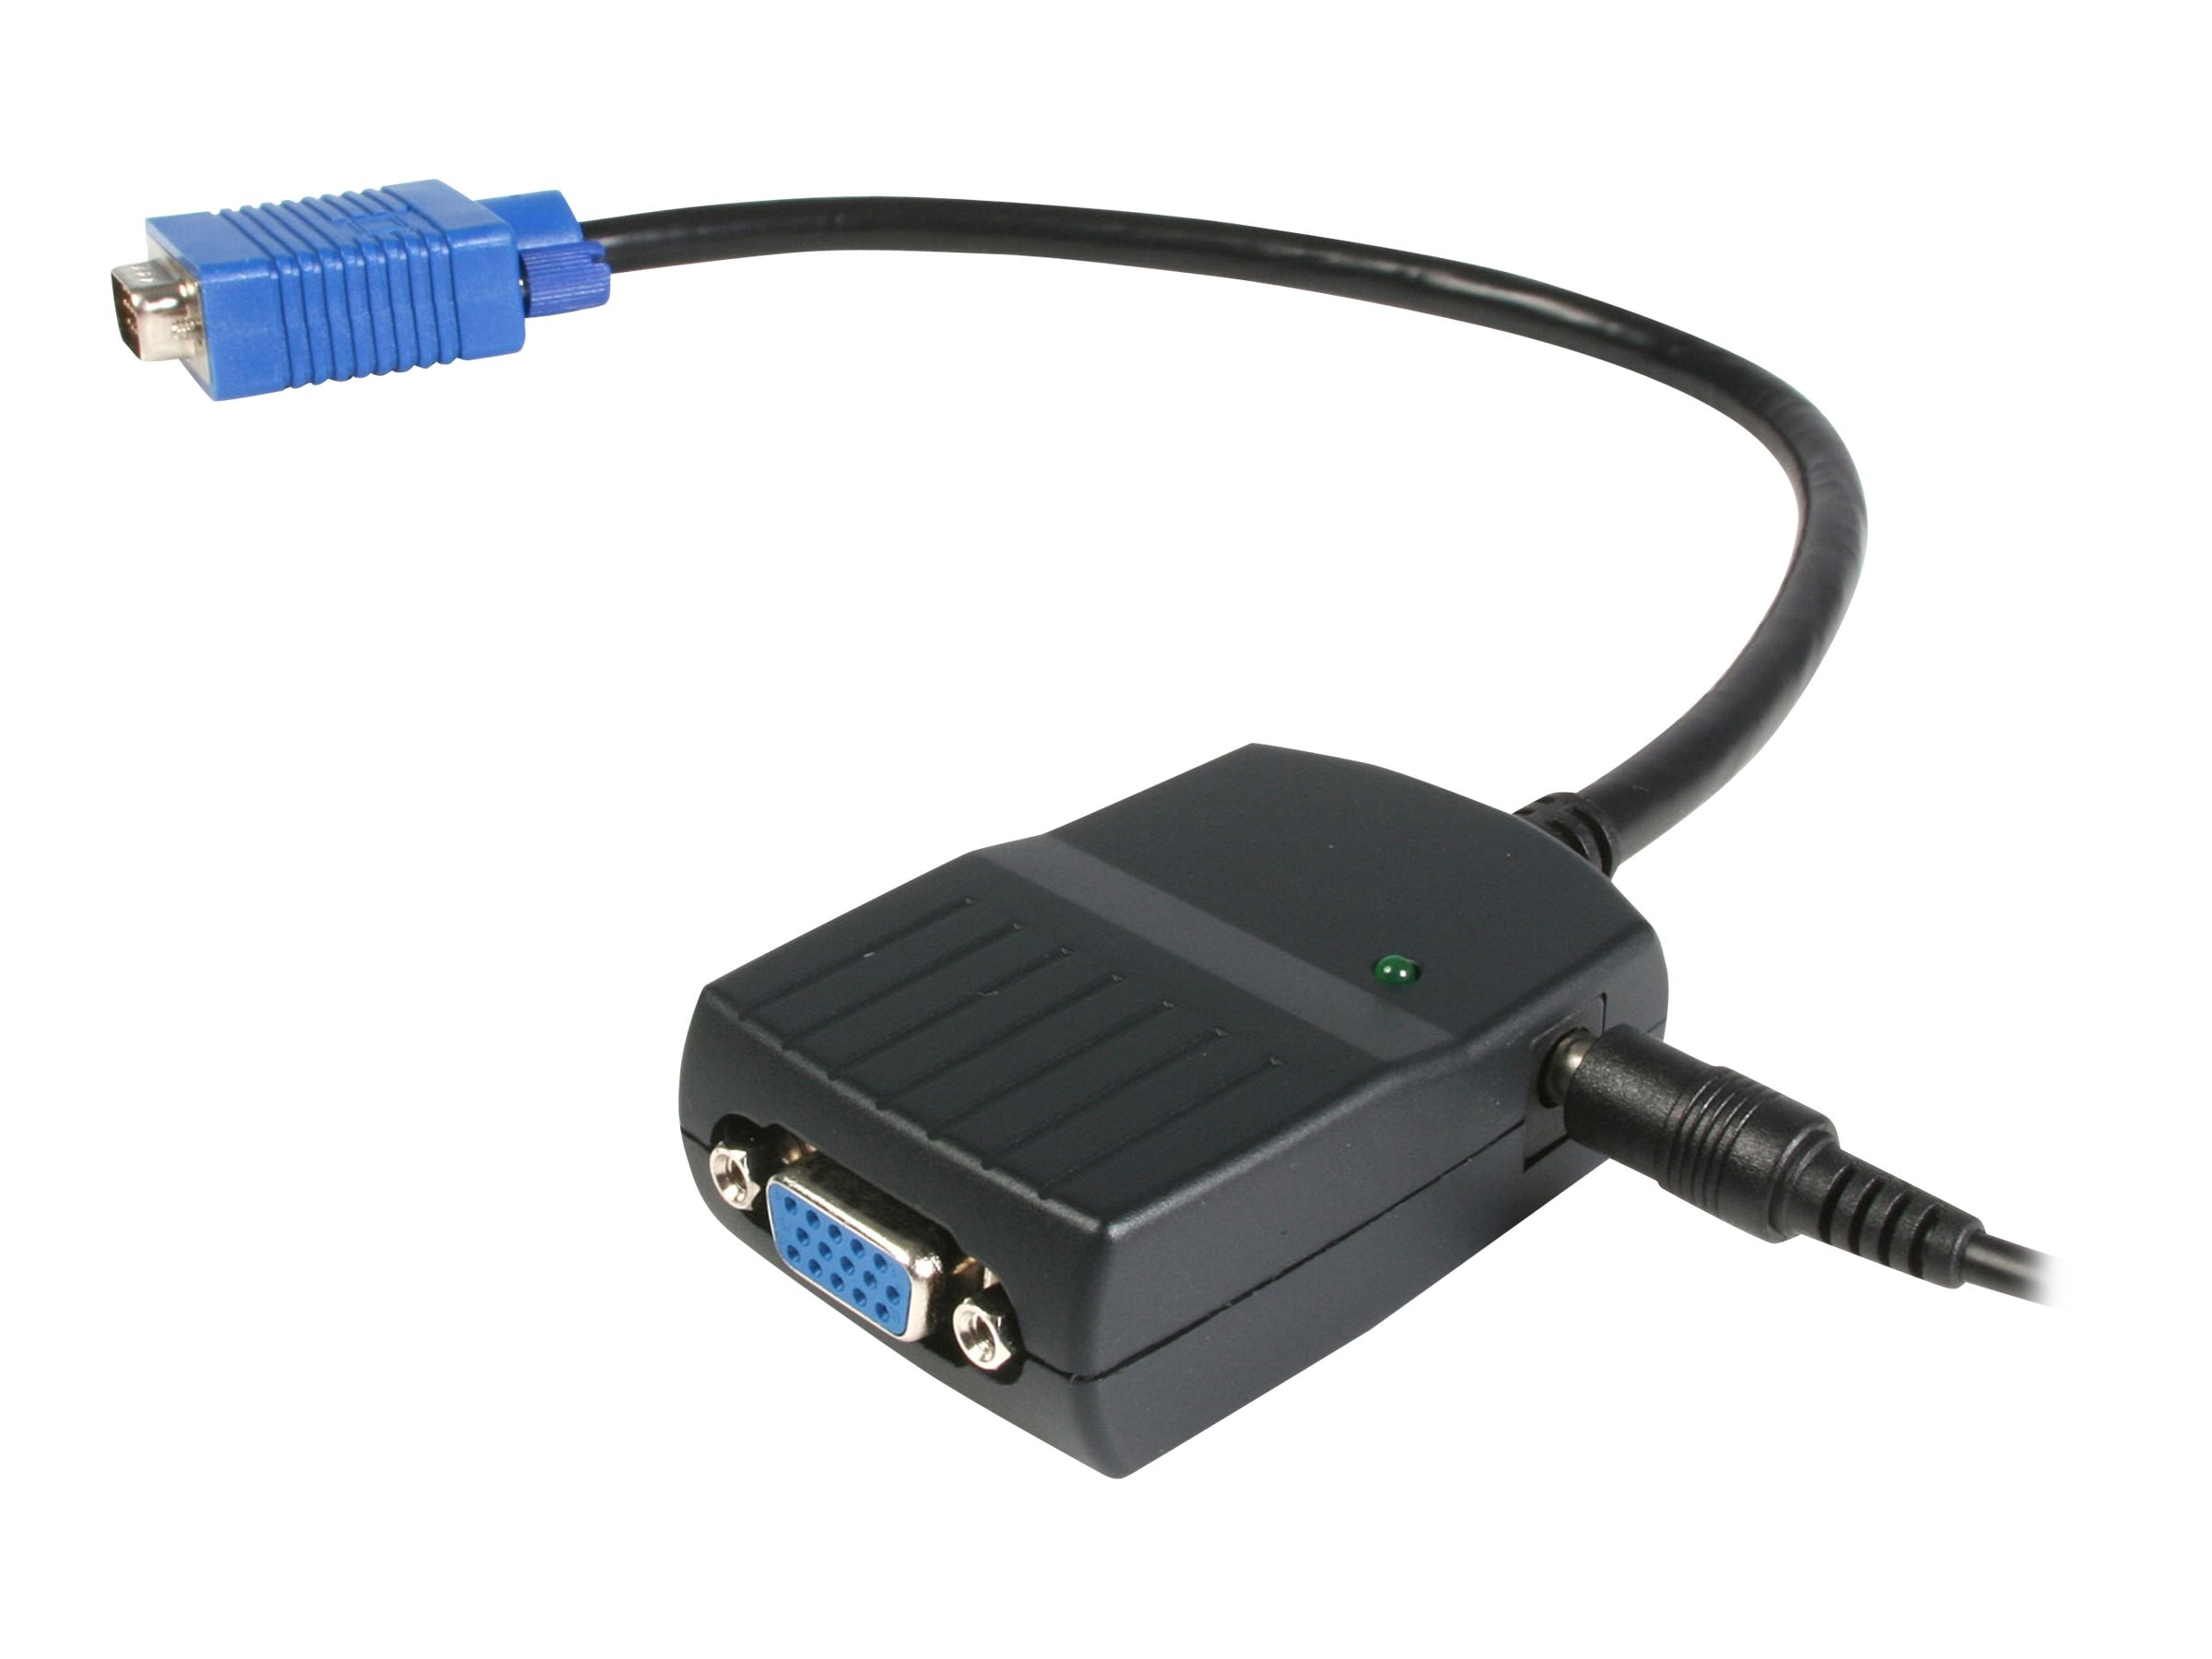 StarTech.com 2-Port VGA Video Splitter, USB Powered, ST122LE